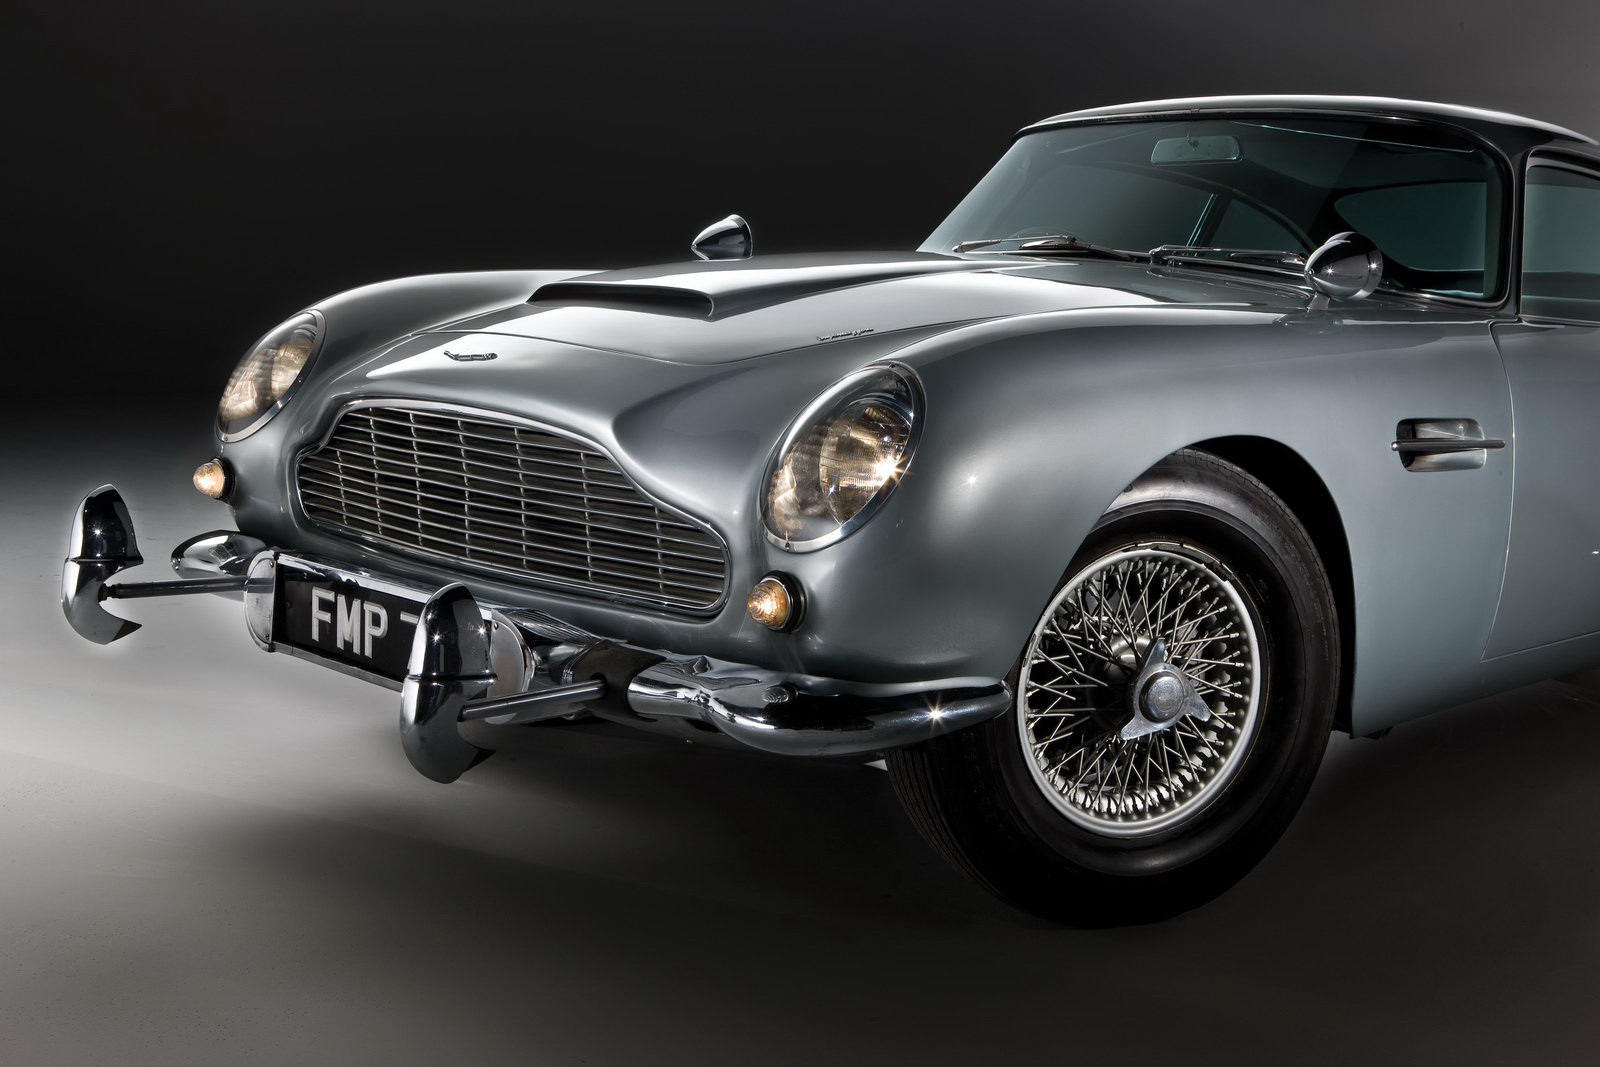 carscoop new cars classics cars james bond 39 s original 39 007 39 aston martin db5 up for sale. Black Bedroom Furniture Sets. Home Design Ideas